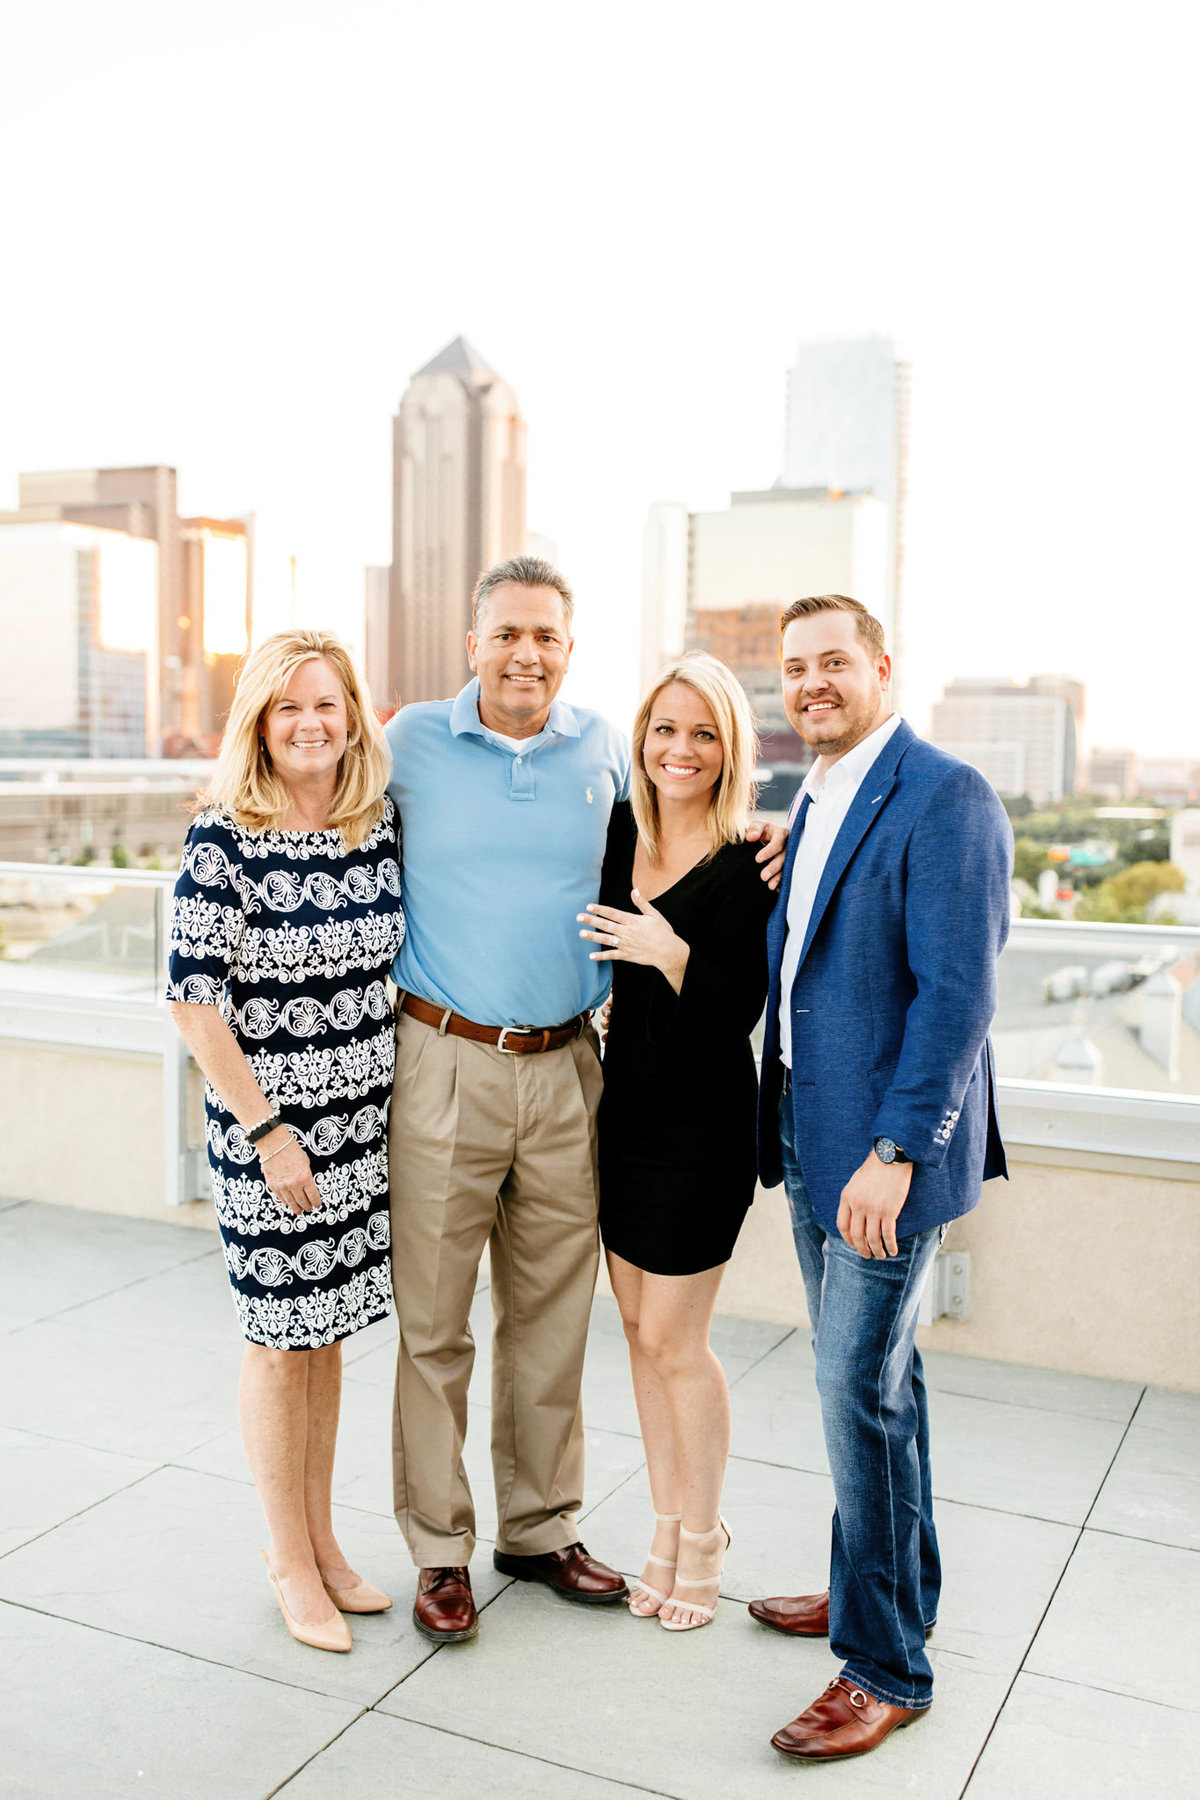 Eric & Megan - Downtown Dallas Rooftop Proposal & Engagement Session-151